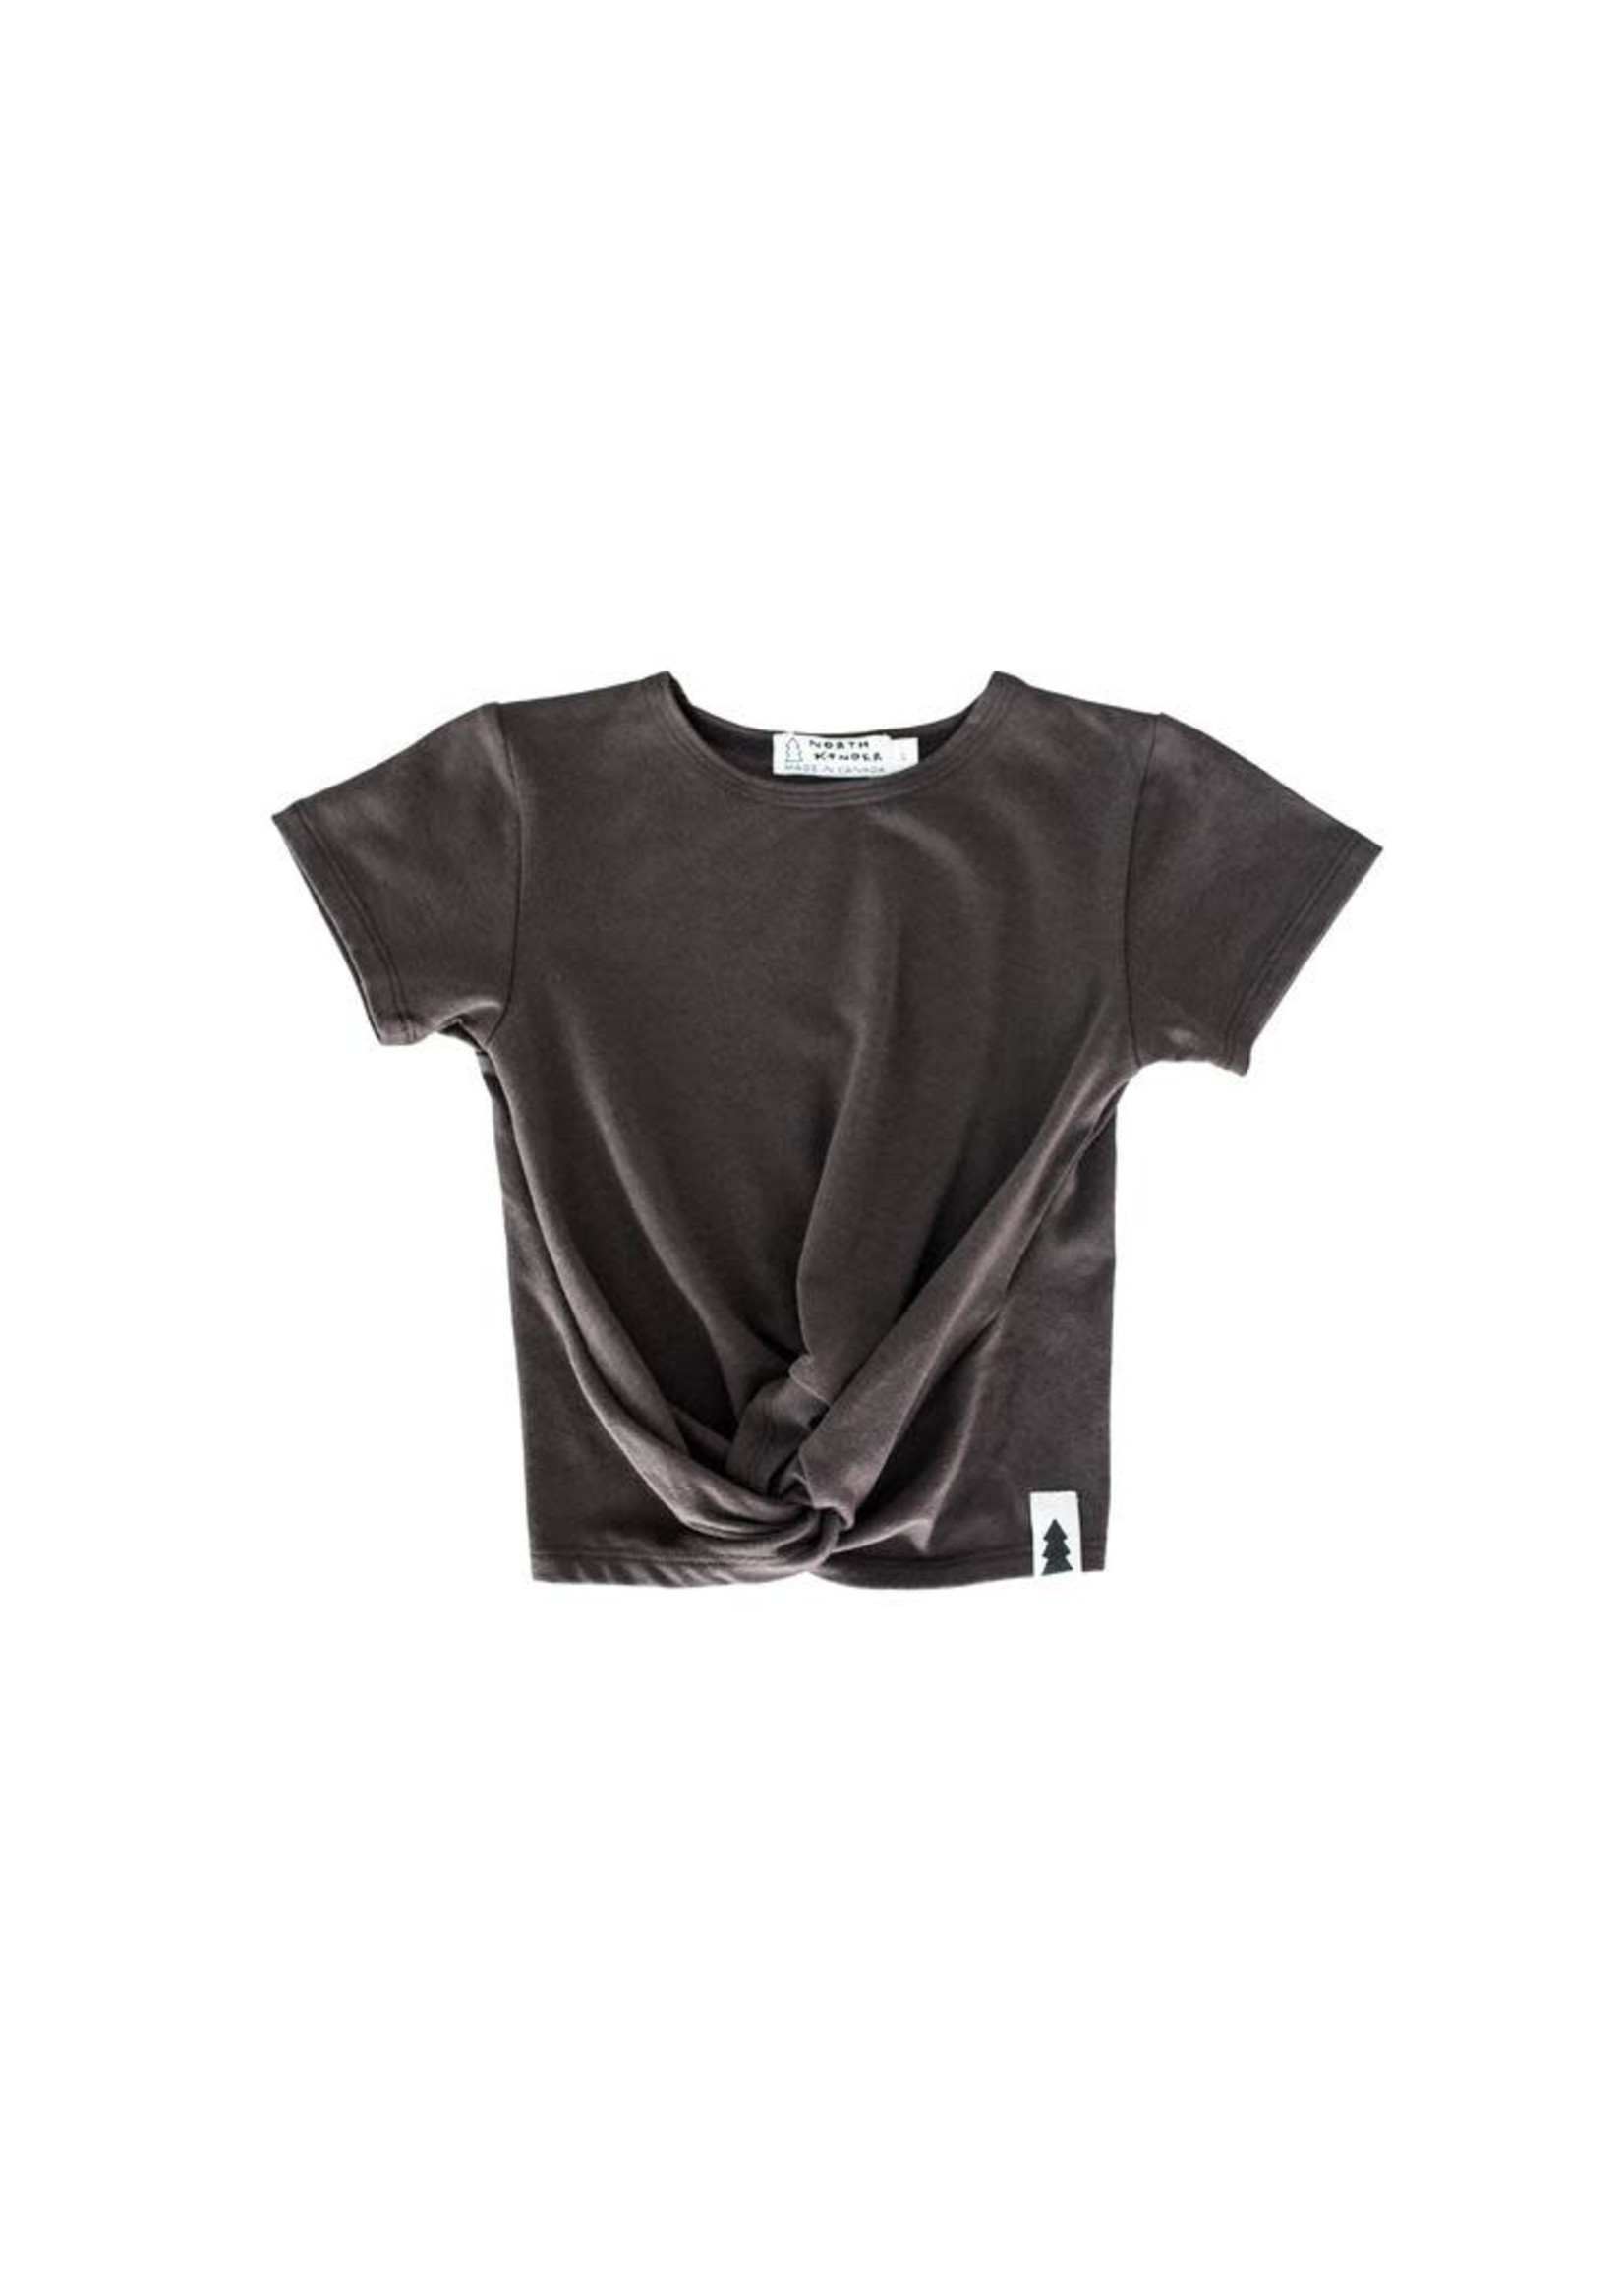 North Kinder NK knotted tee